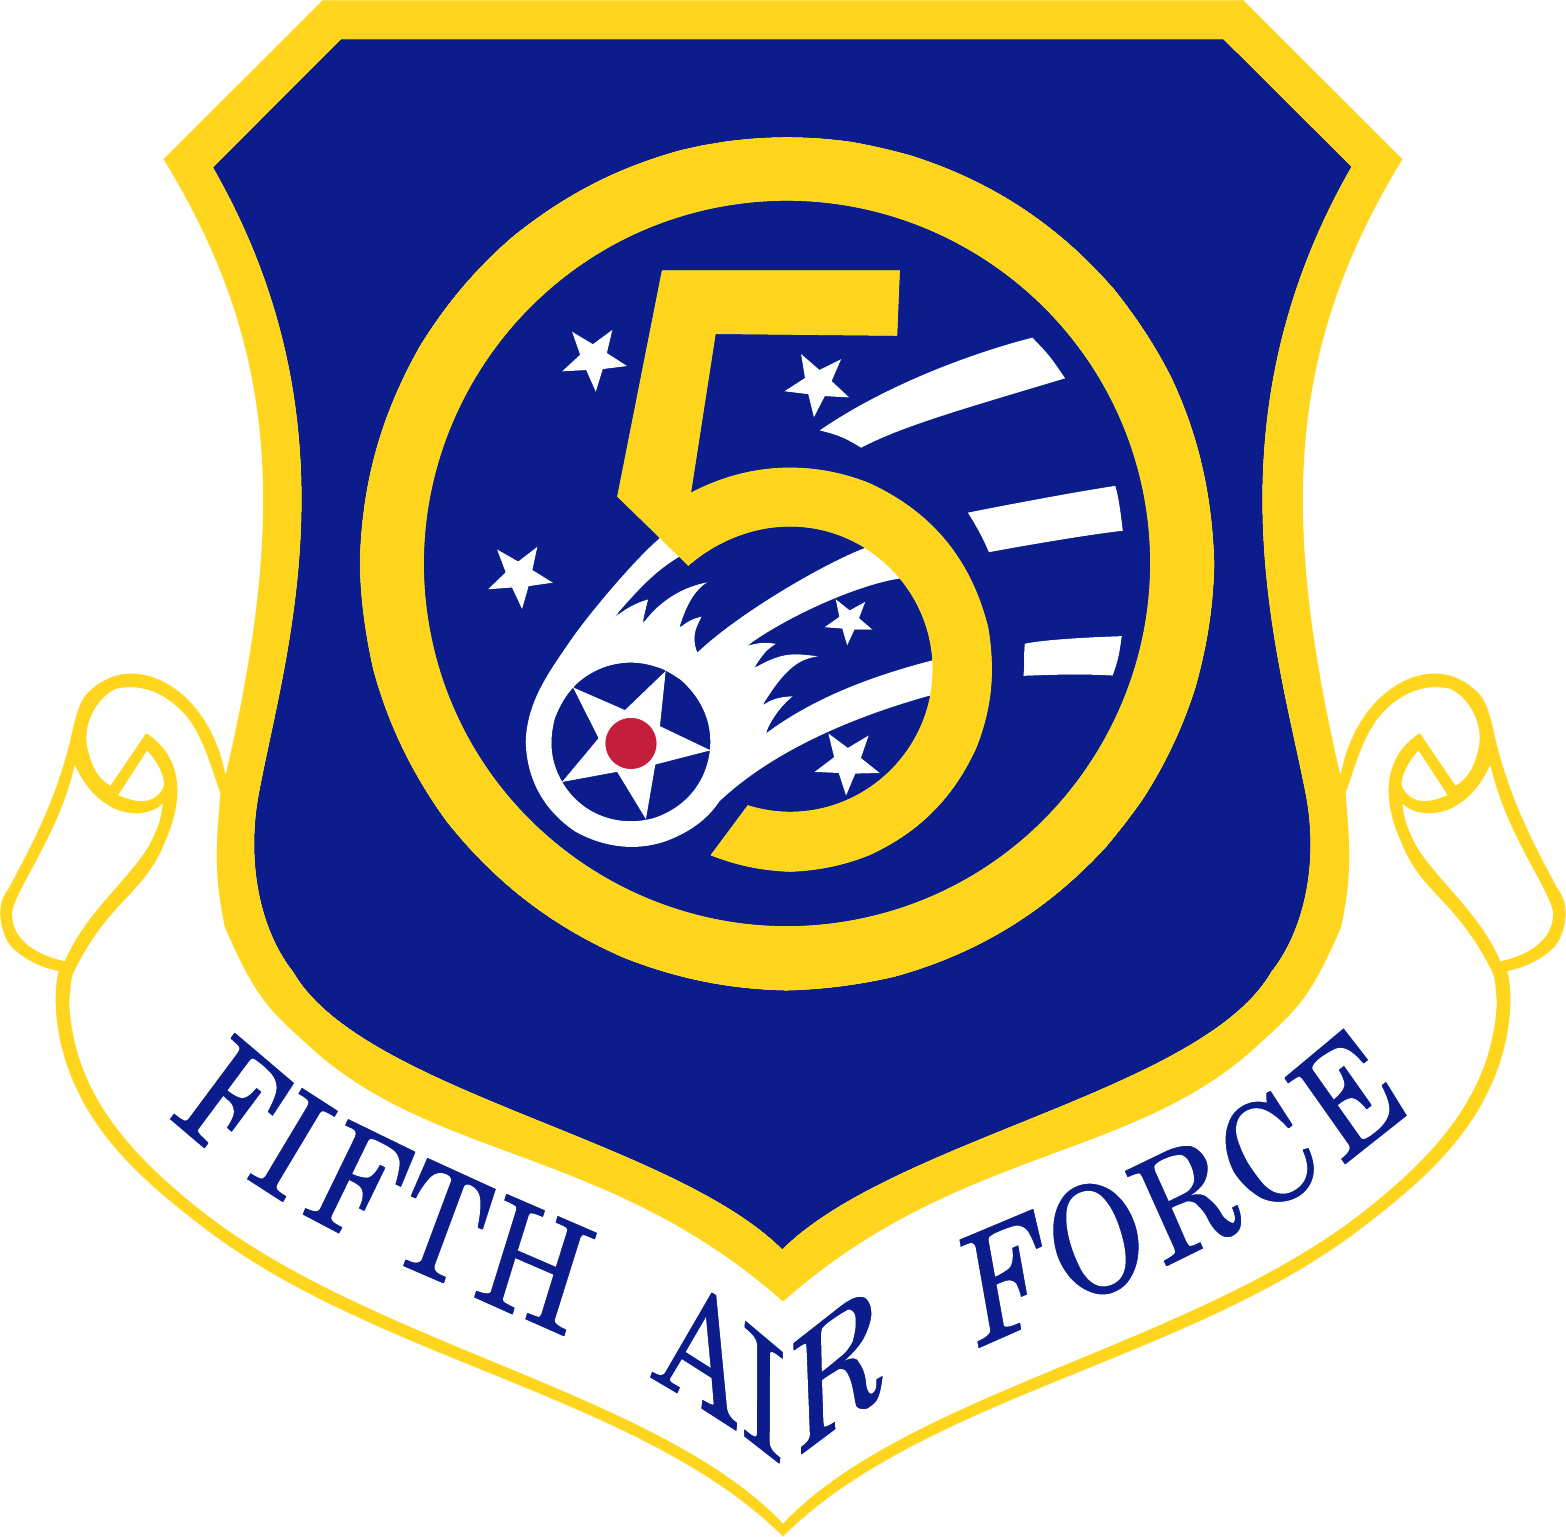 Air force patch clipart black and white banner transparent download Fifth Air Force - Wikipedia banner transparent download